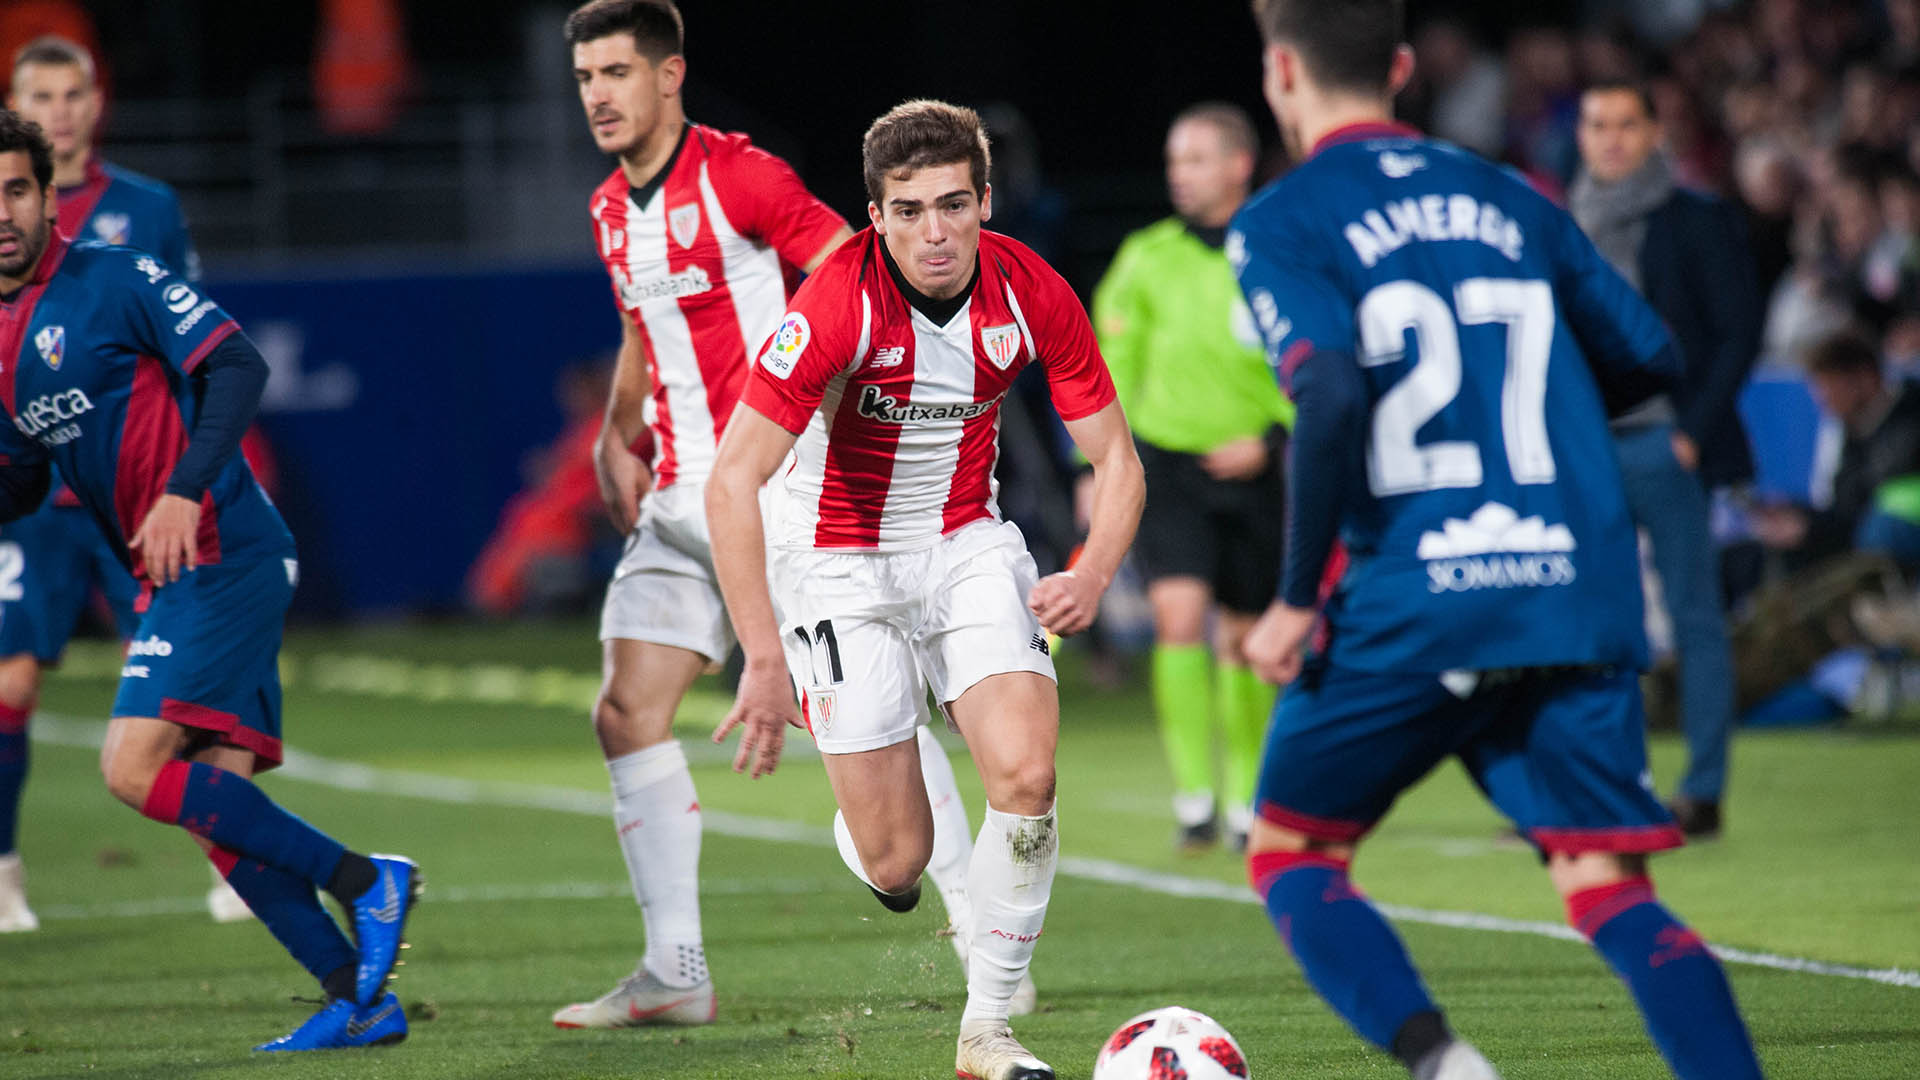 SD Huesca-Athletic Club partidarako sarrerak